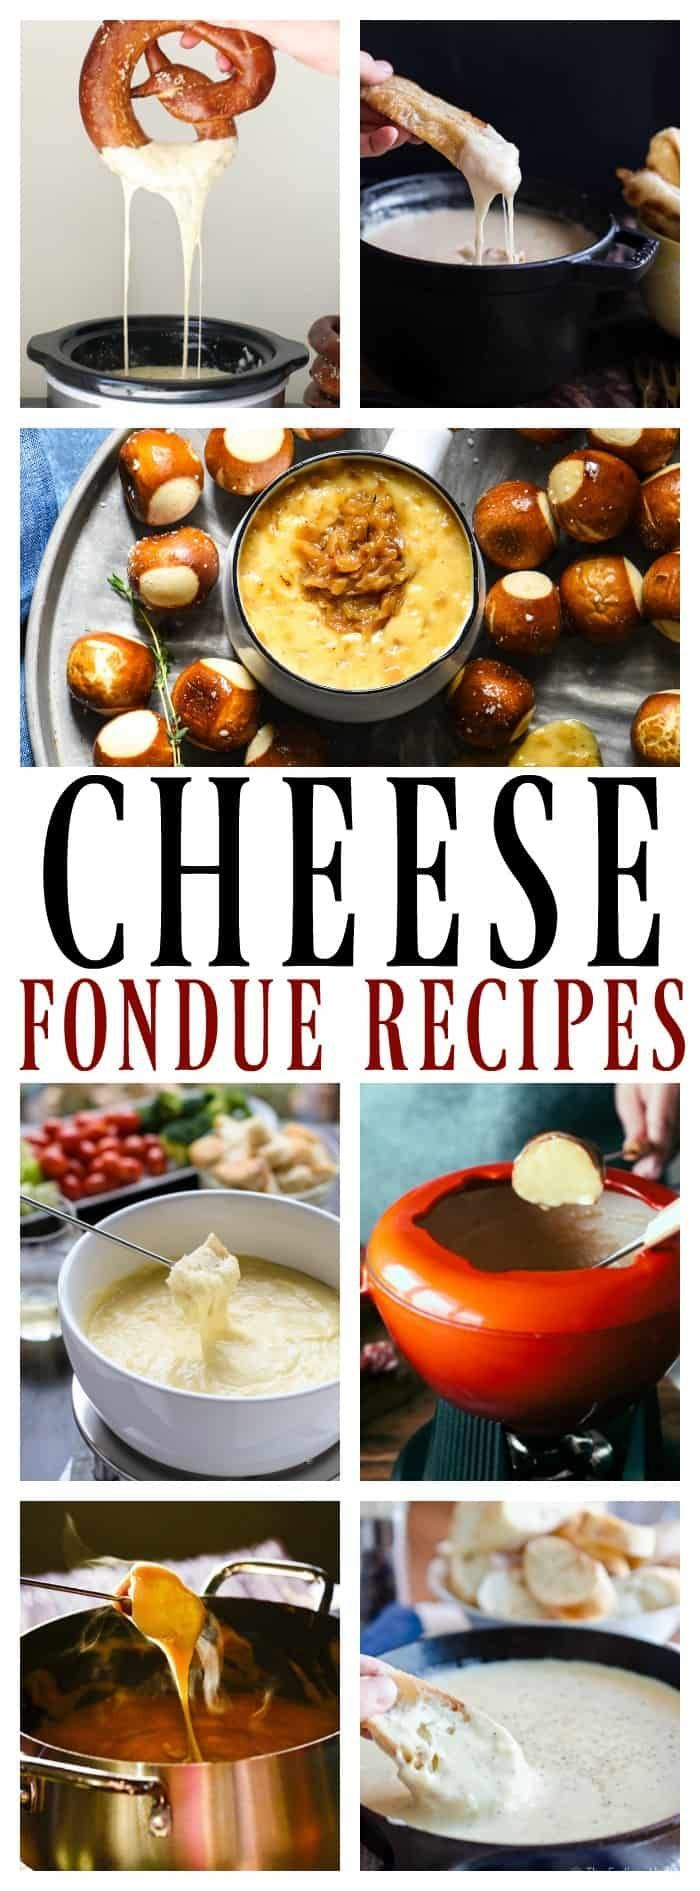 13 Festive Cheese Fondues #fonduerecipes